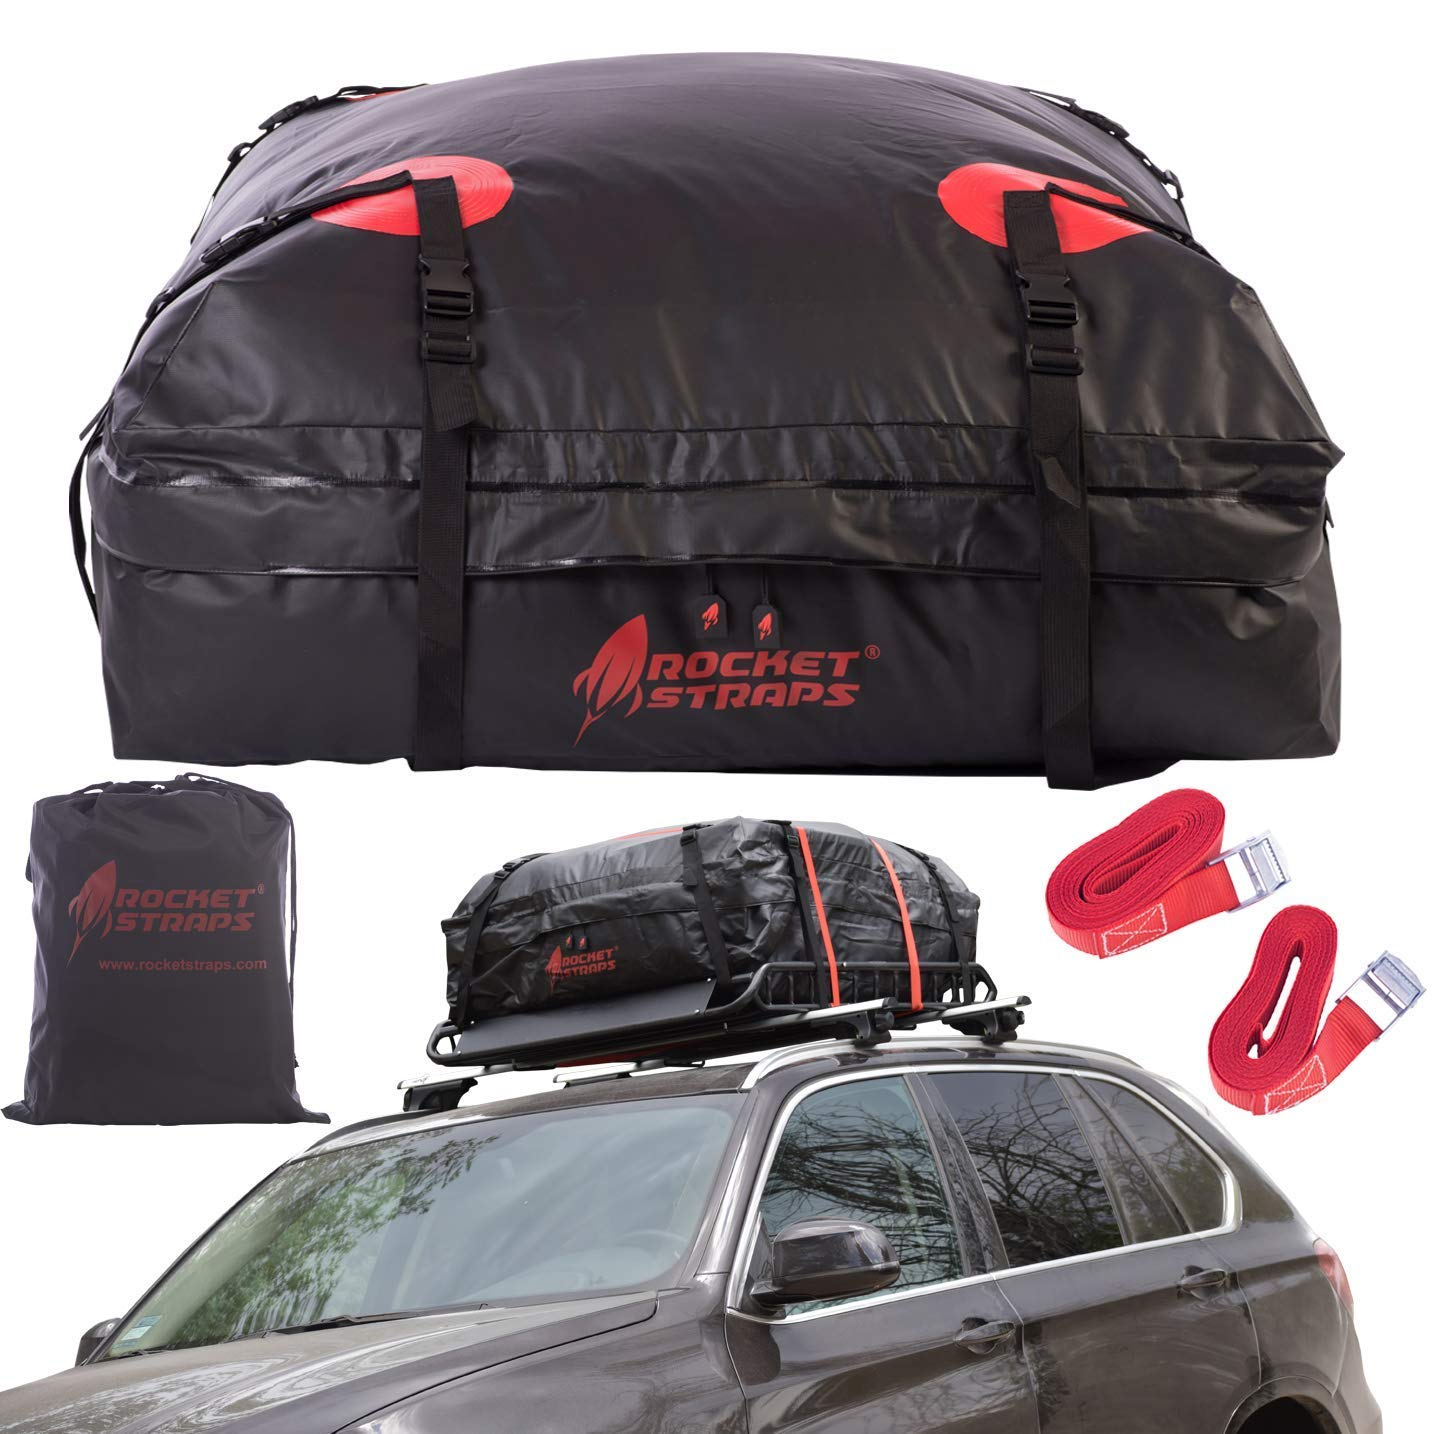 Vinosimo Car Rooftop Cargo Carrier Bag: 15 Cubit Feet 4 Straps Adjustable with or Without Racks and Carry Bag 100/% Waterproof UV Nylon with Zipper